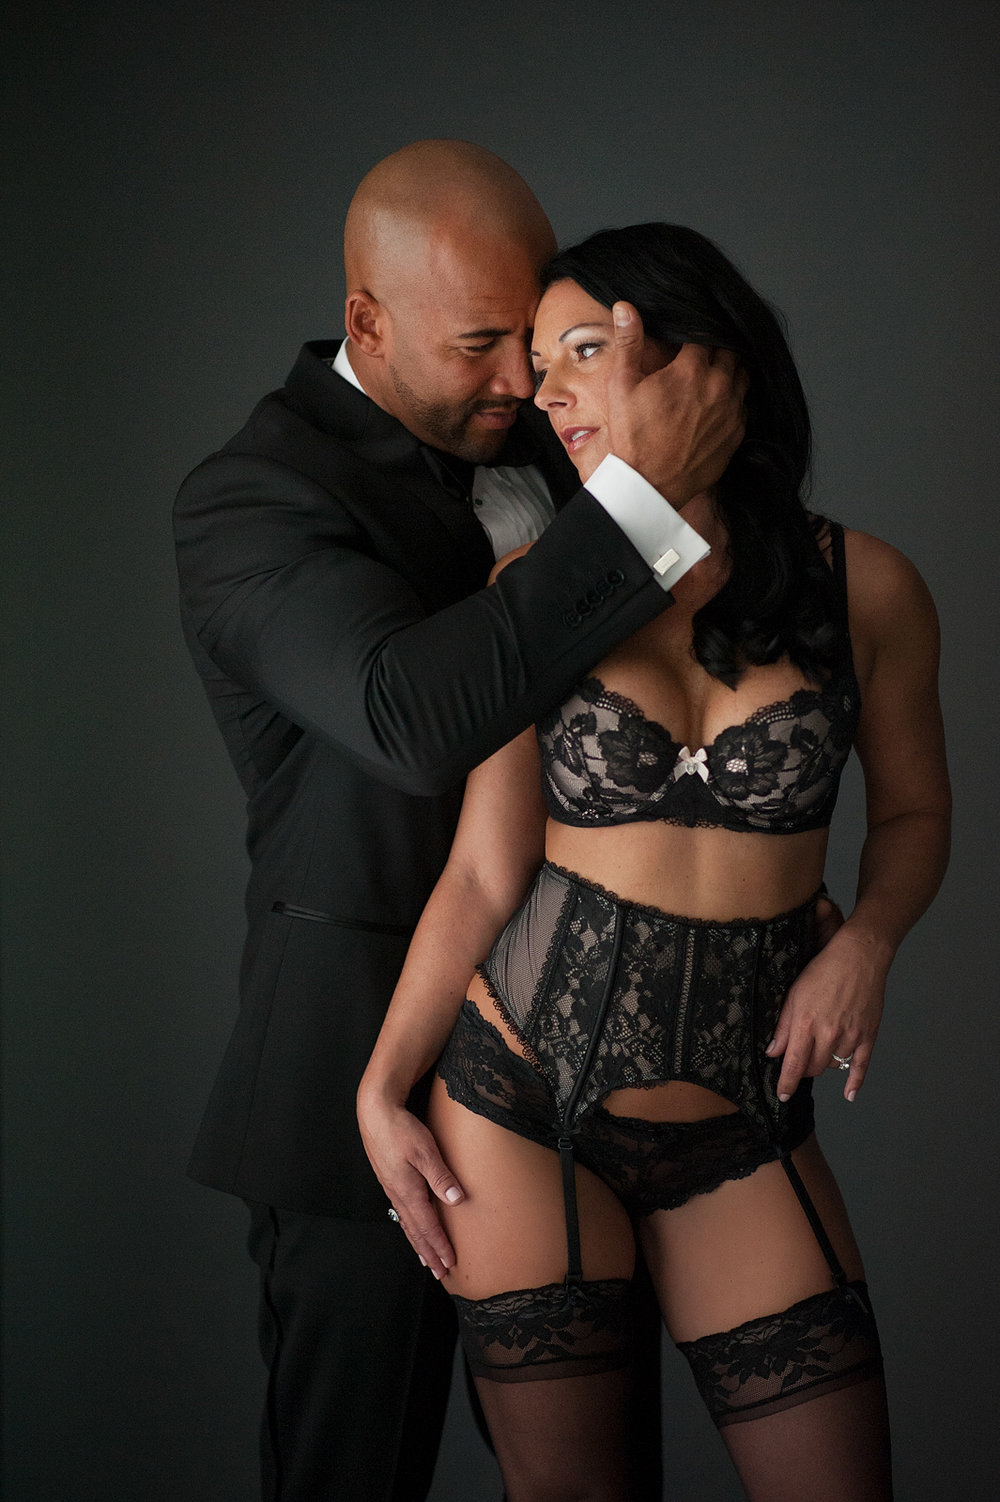 15-man-suit-woman-lingerie-couples-boudoir-upscale-elegant.jpg